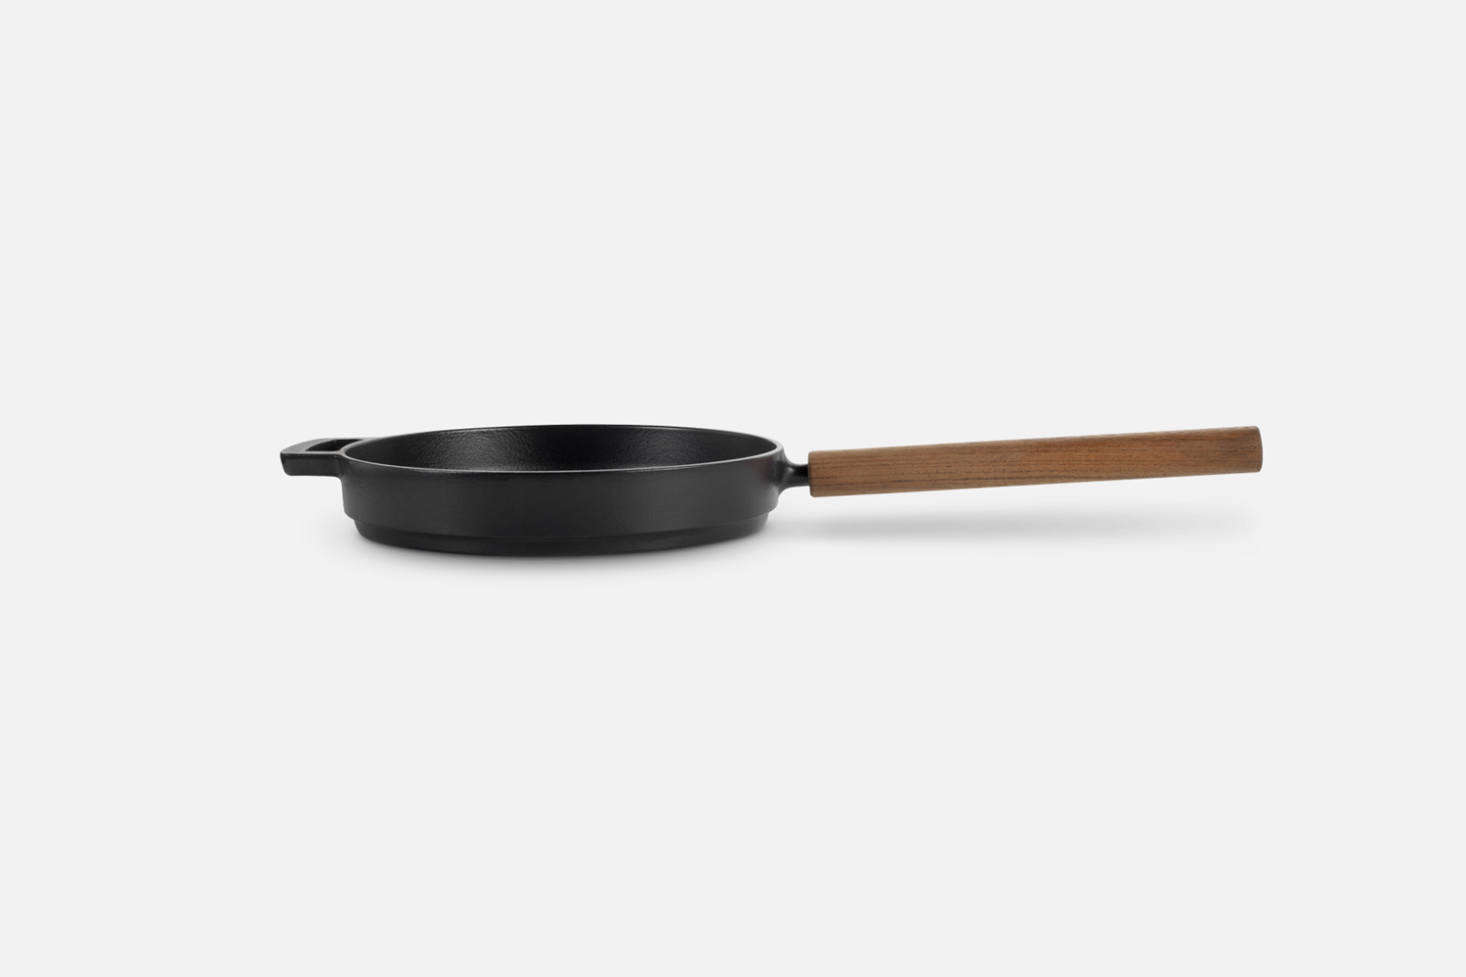 The Combekk Railways 11-Inch Cast Iron Fry Pan is made in the Netherlands of recycled iron and an FSC-certified wood handle; $175 at Williams-Sonoma.